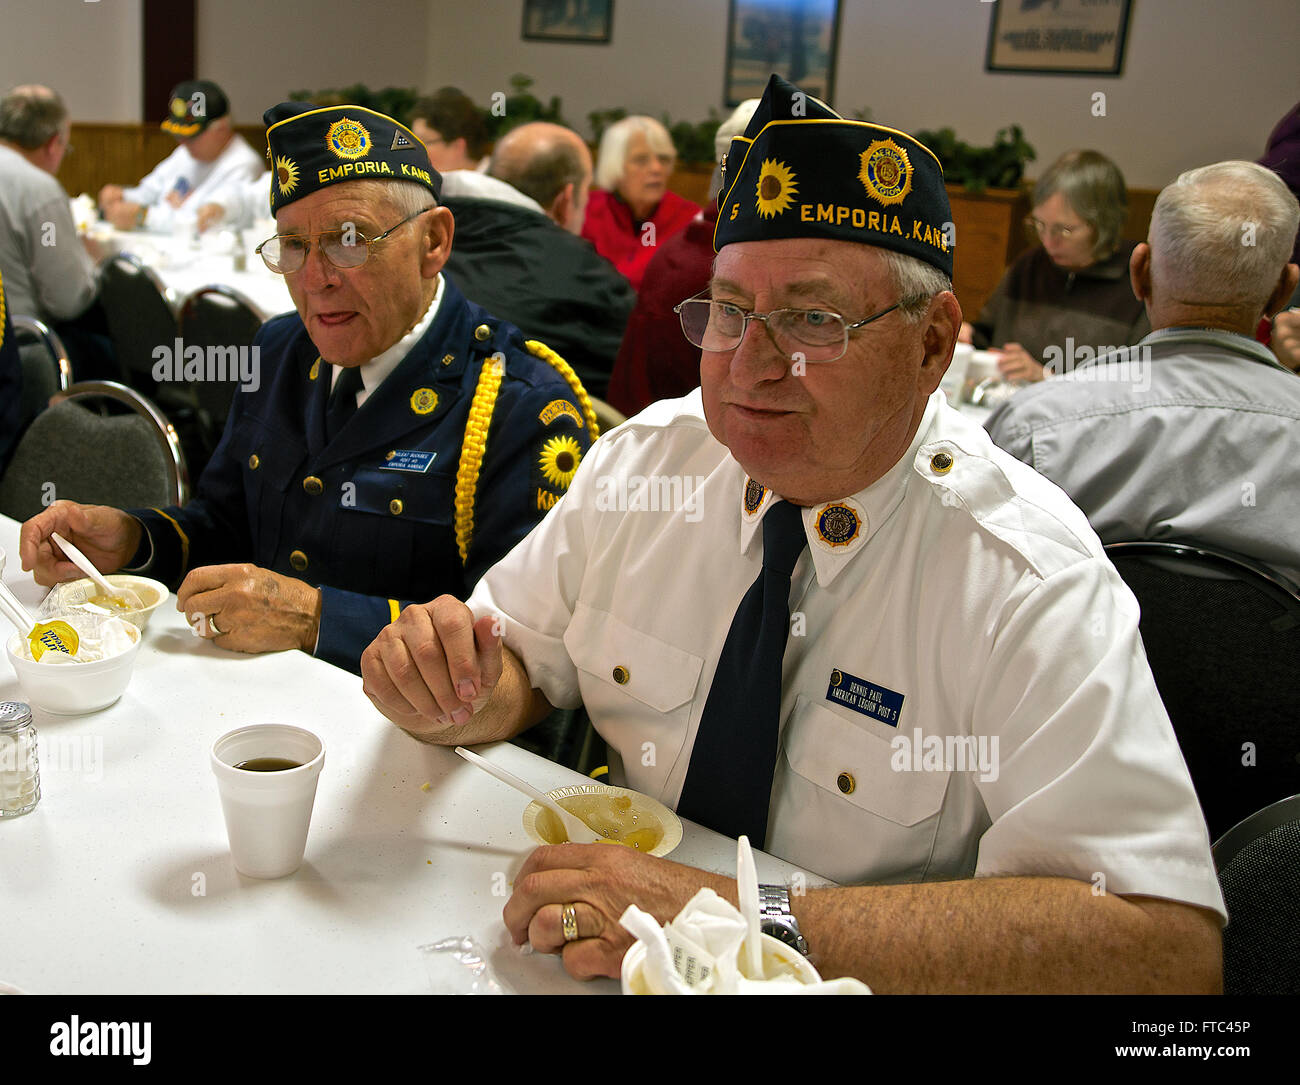 Emporia, Kansas, USA, 11th November, 2014 Cleat Buckbee (L) and Dennis Pearl both members of American Legion Post - Stock Image